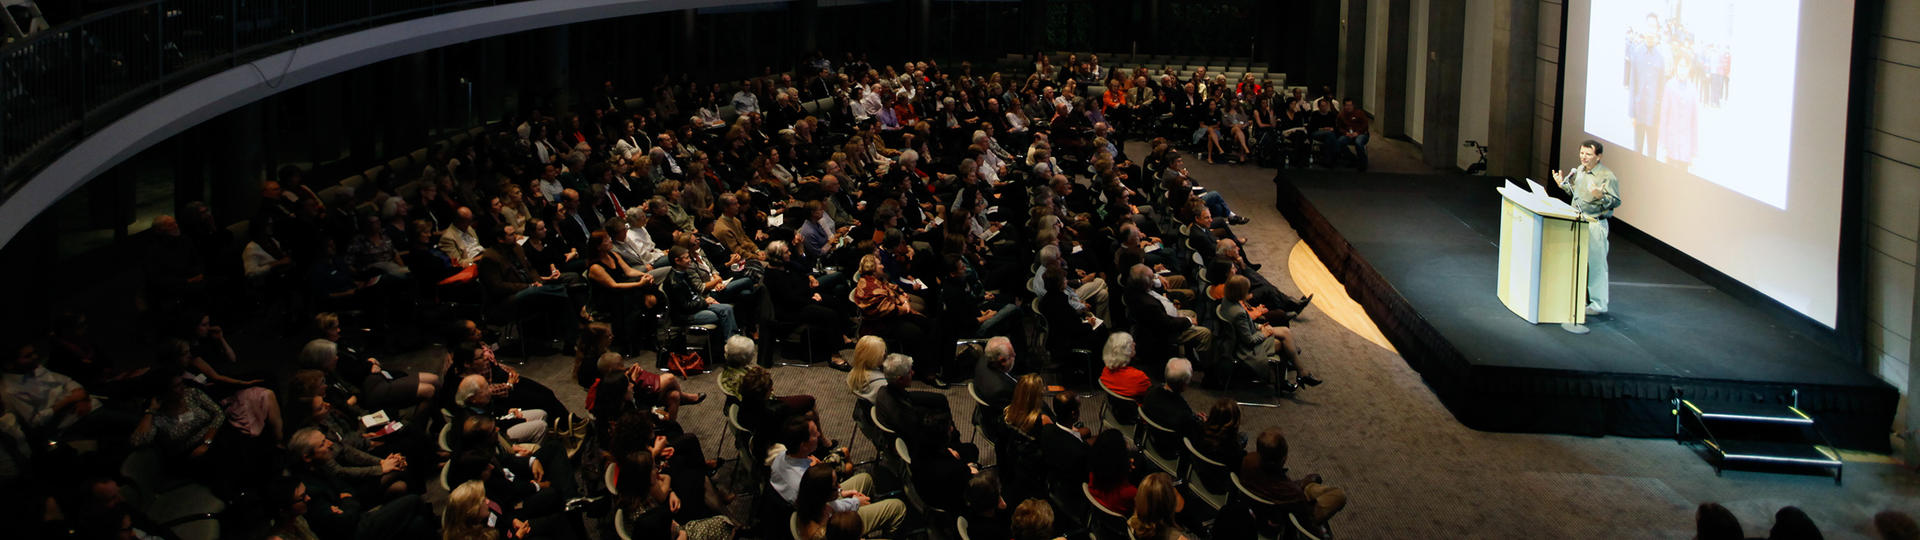 Lecturer on a stage talking to a large audience seated below